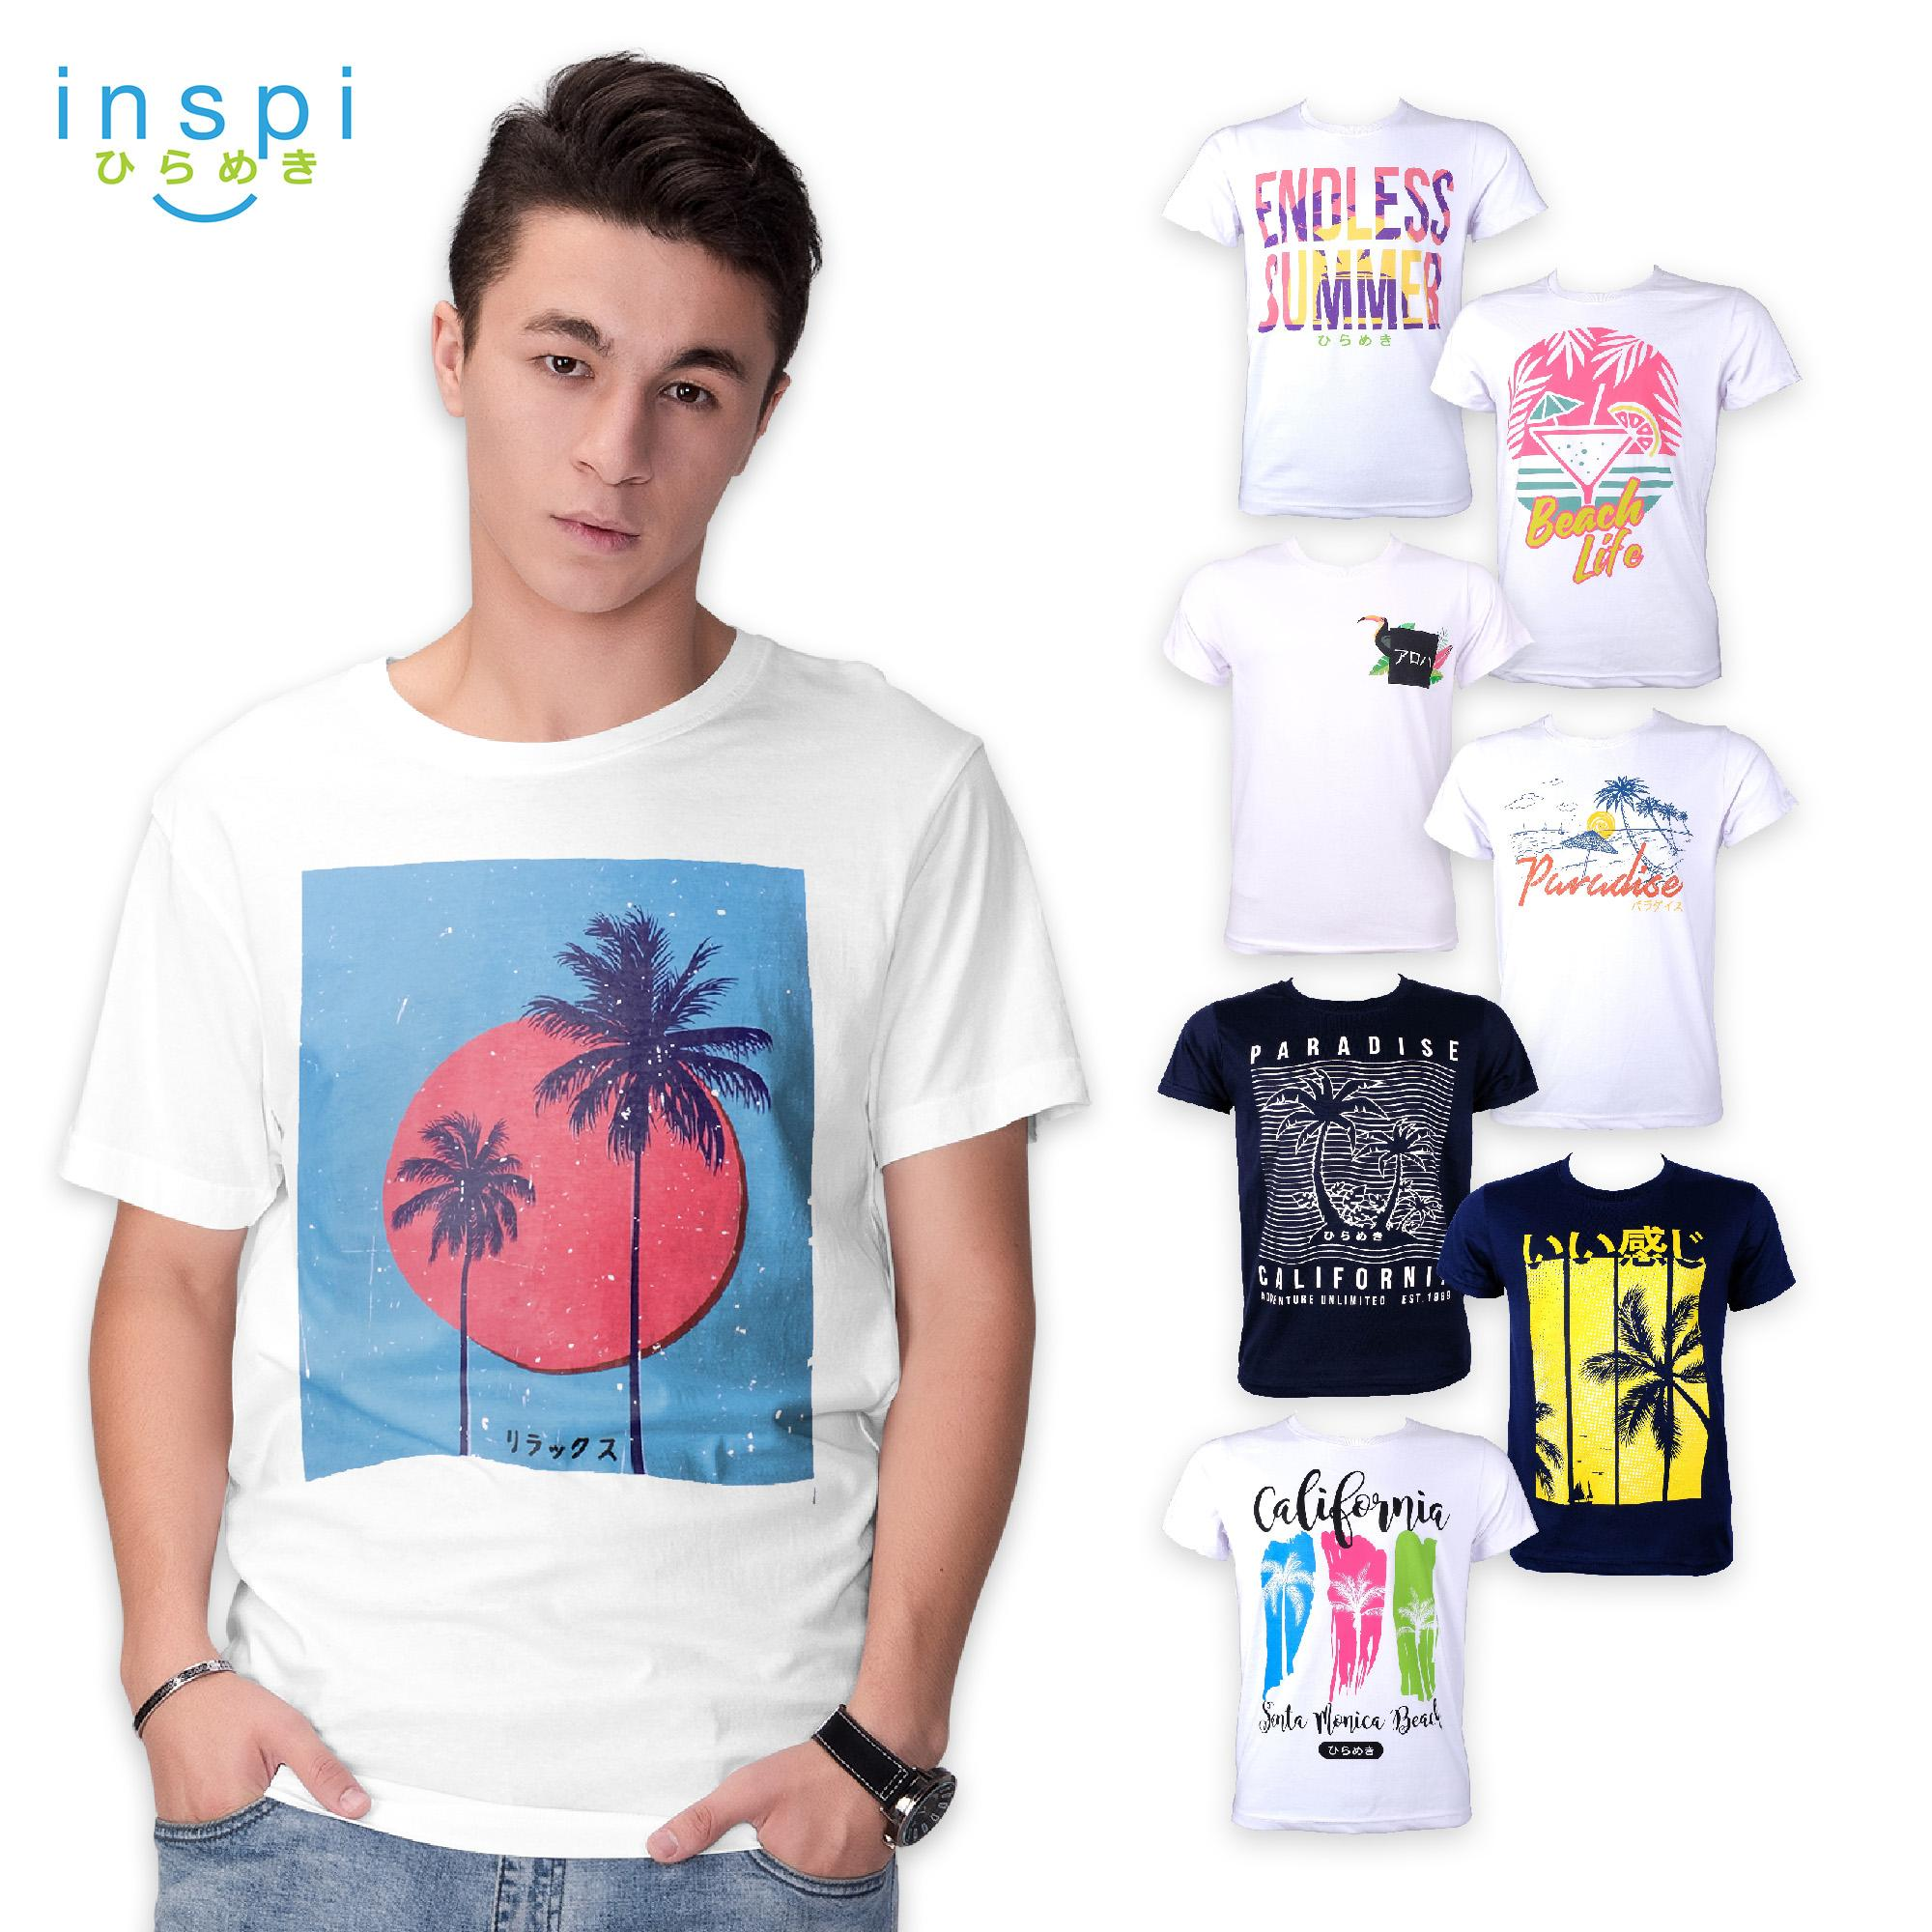 f8a5c54bf7f INSPI Tees Summer Collection tshirt printed graphic tee Mens t shirt shirts  for men tshirts sale